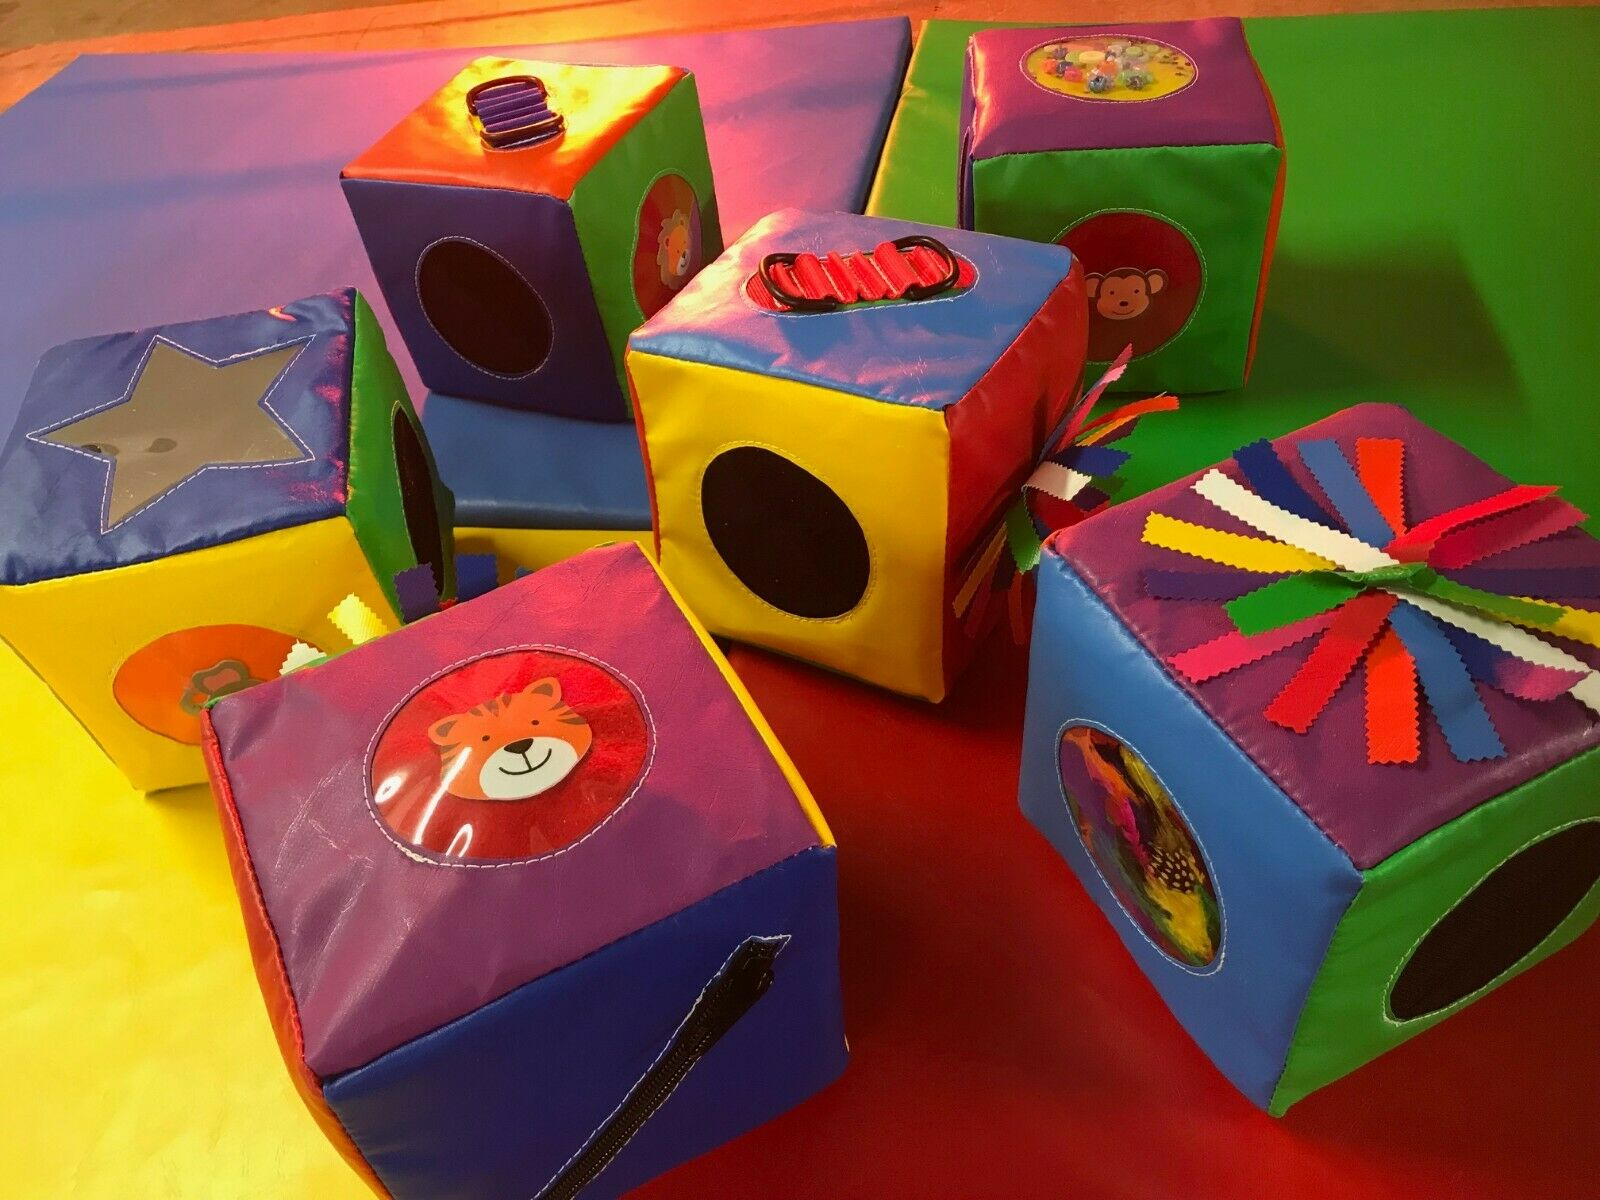 Quality Sensory soft play cubes 8 inch x 8 inch   x set 6  Multi Coloured vary